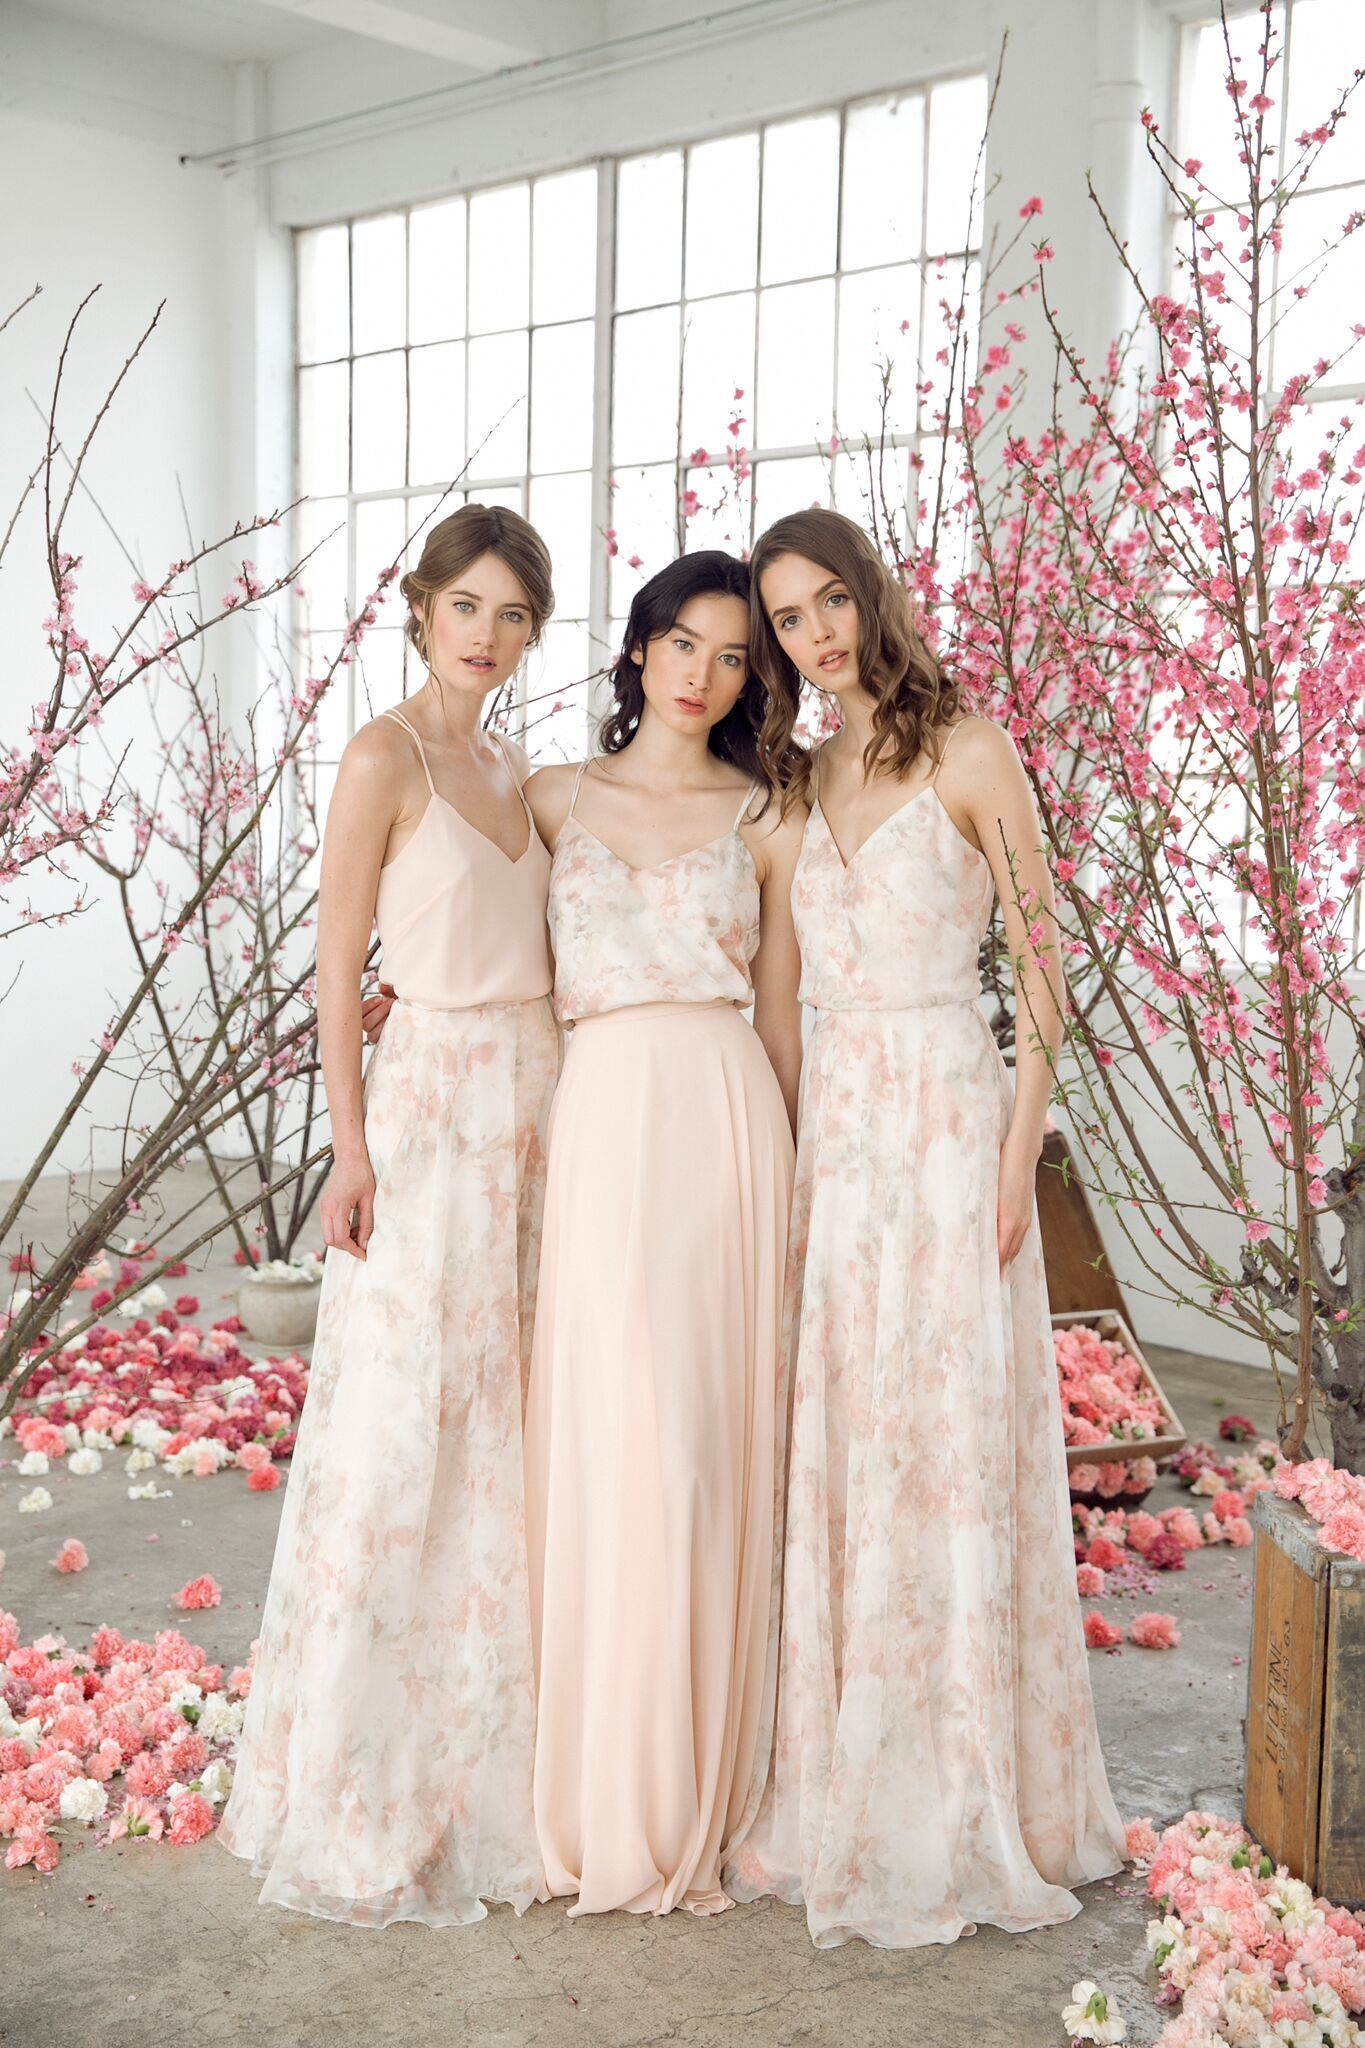 Jenny Yoo Separates And Bridesmaids Romantic Bridal Party Blush Floral And Soli Floral Bridesmaid Dresses Wedding Bridesmaid Dresses Summer Wedding Outfits